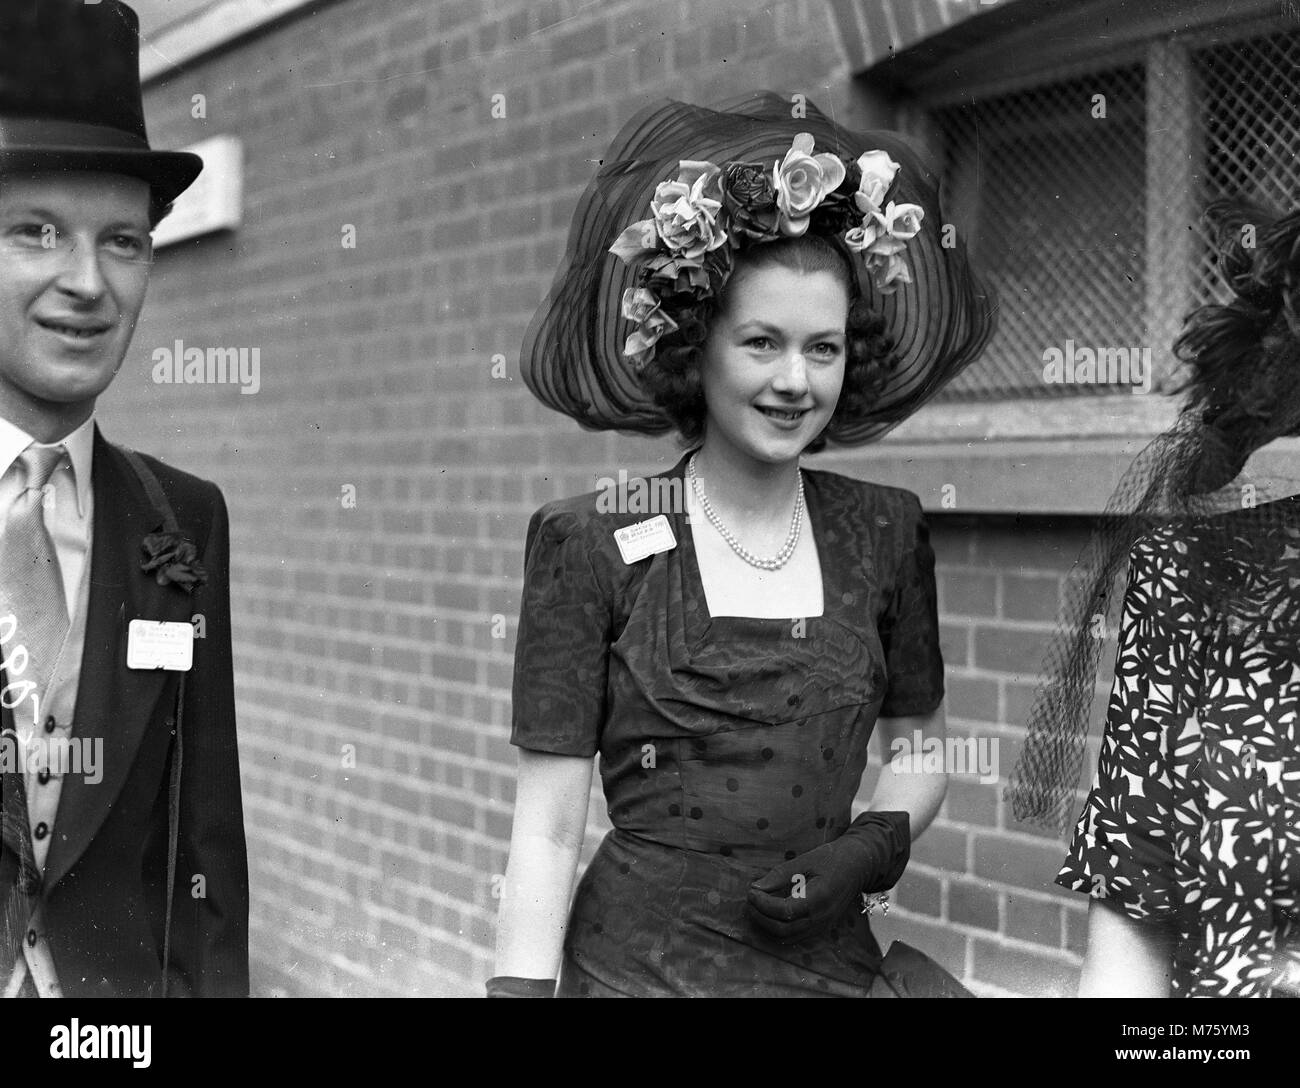 Royal Ascot 1948 Miss Raine McCorquodale dressed in style for a day at the races. - Stock Image